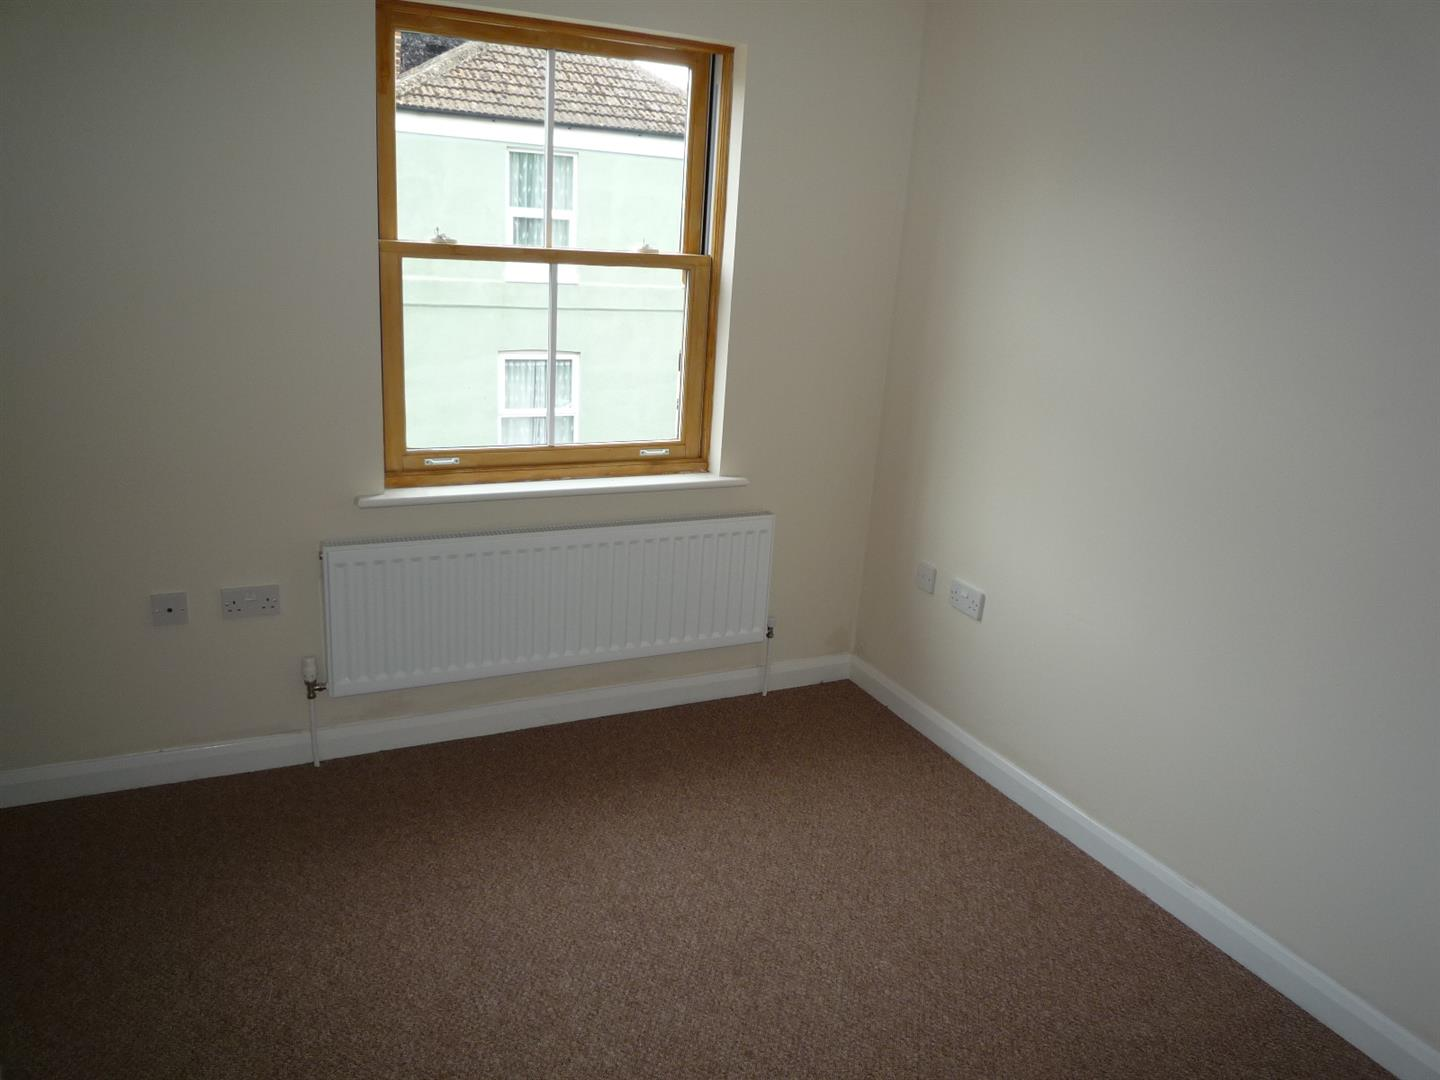 3 bed house to rent in Holbeach Spalding, PE12 7DR 4